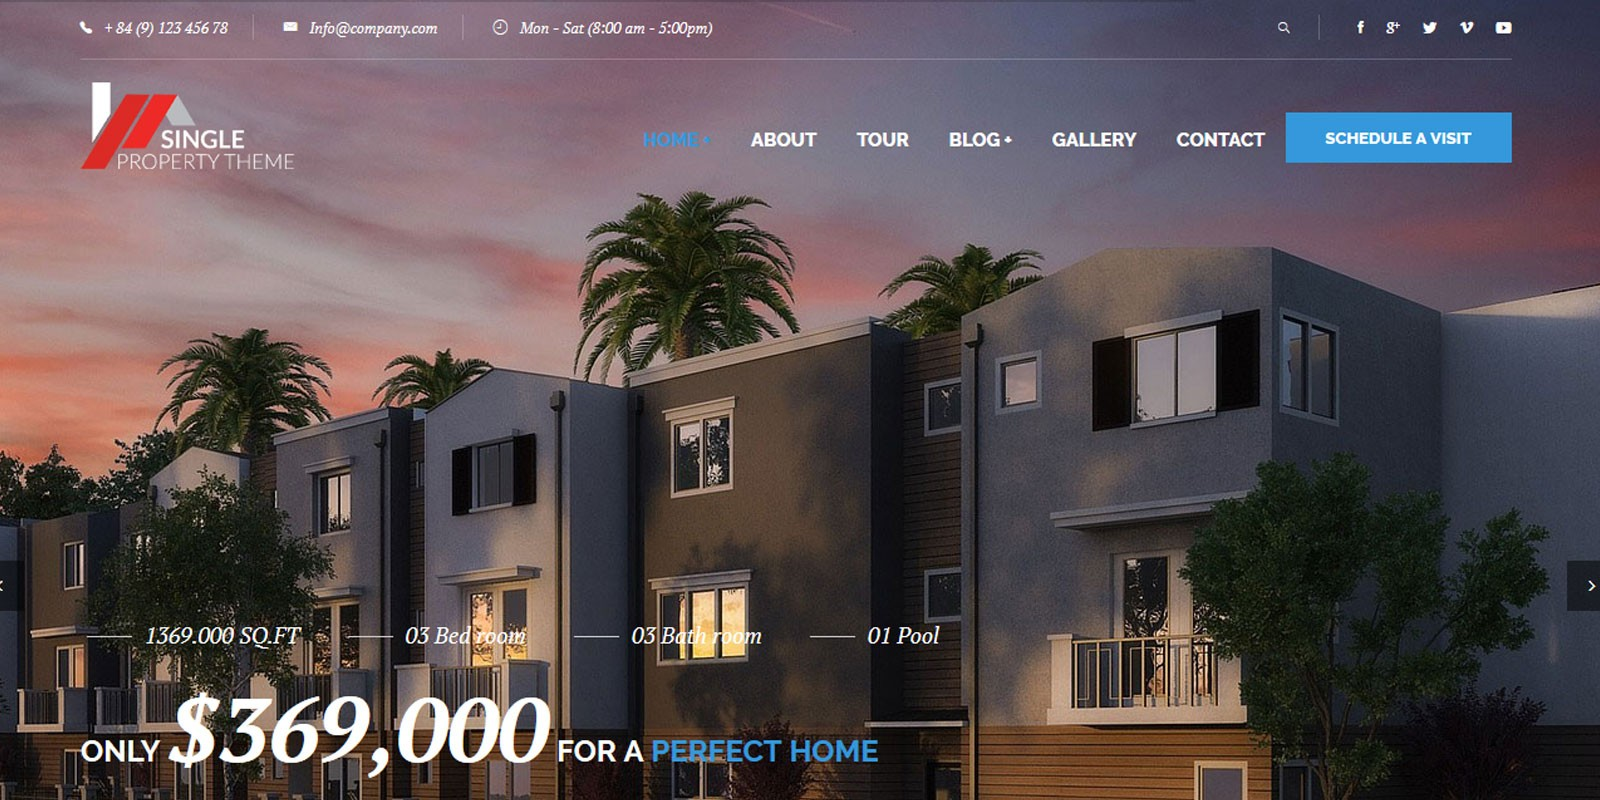 Single Property Real Estate HTML Template